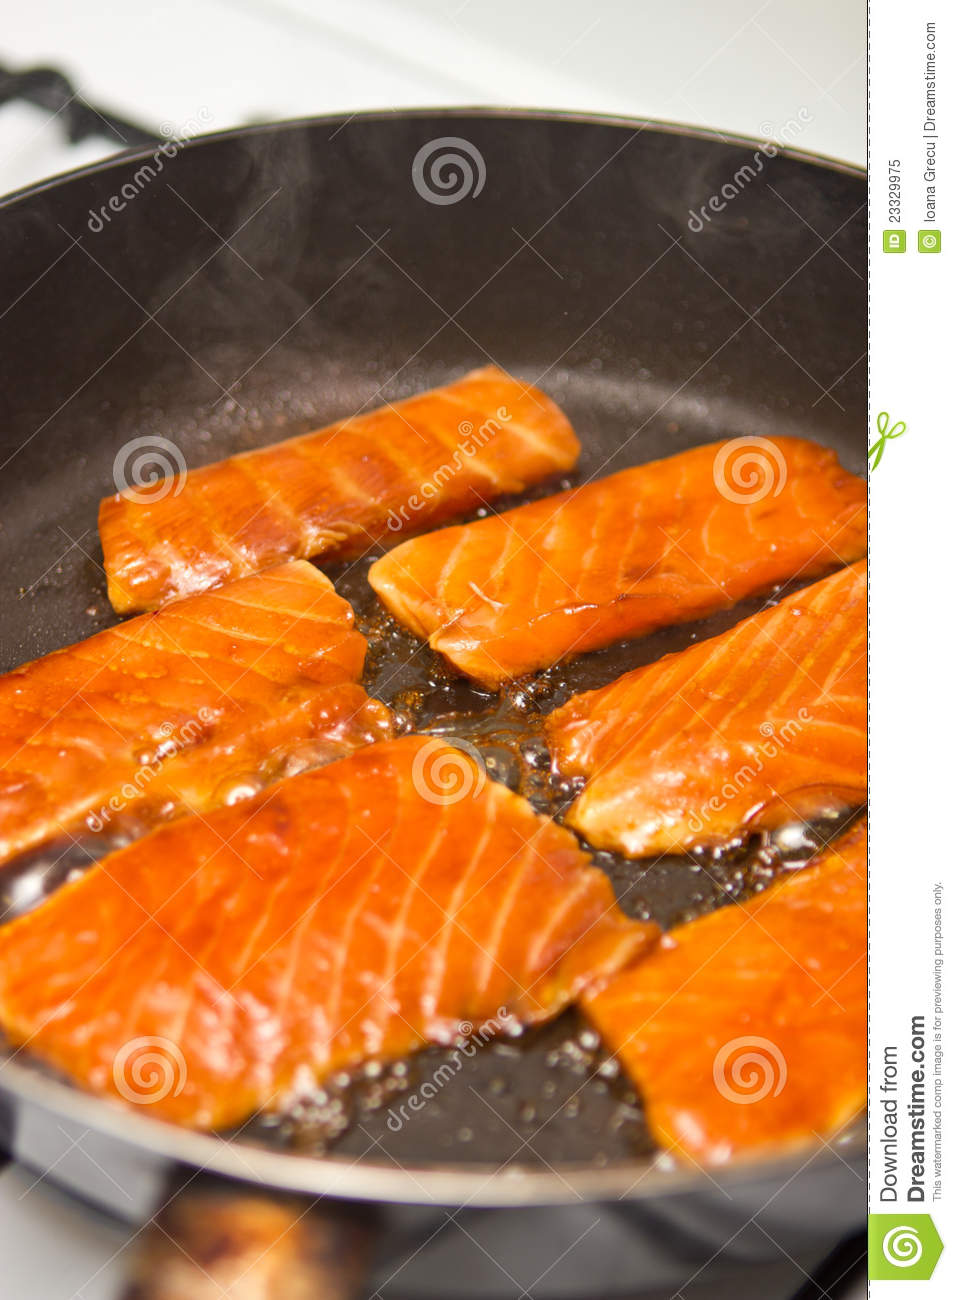 how to cook a fillet of salmon on a pan